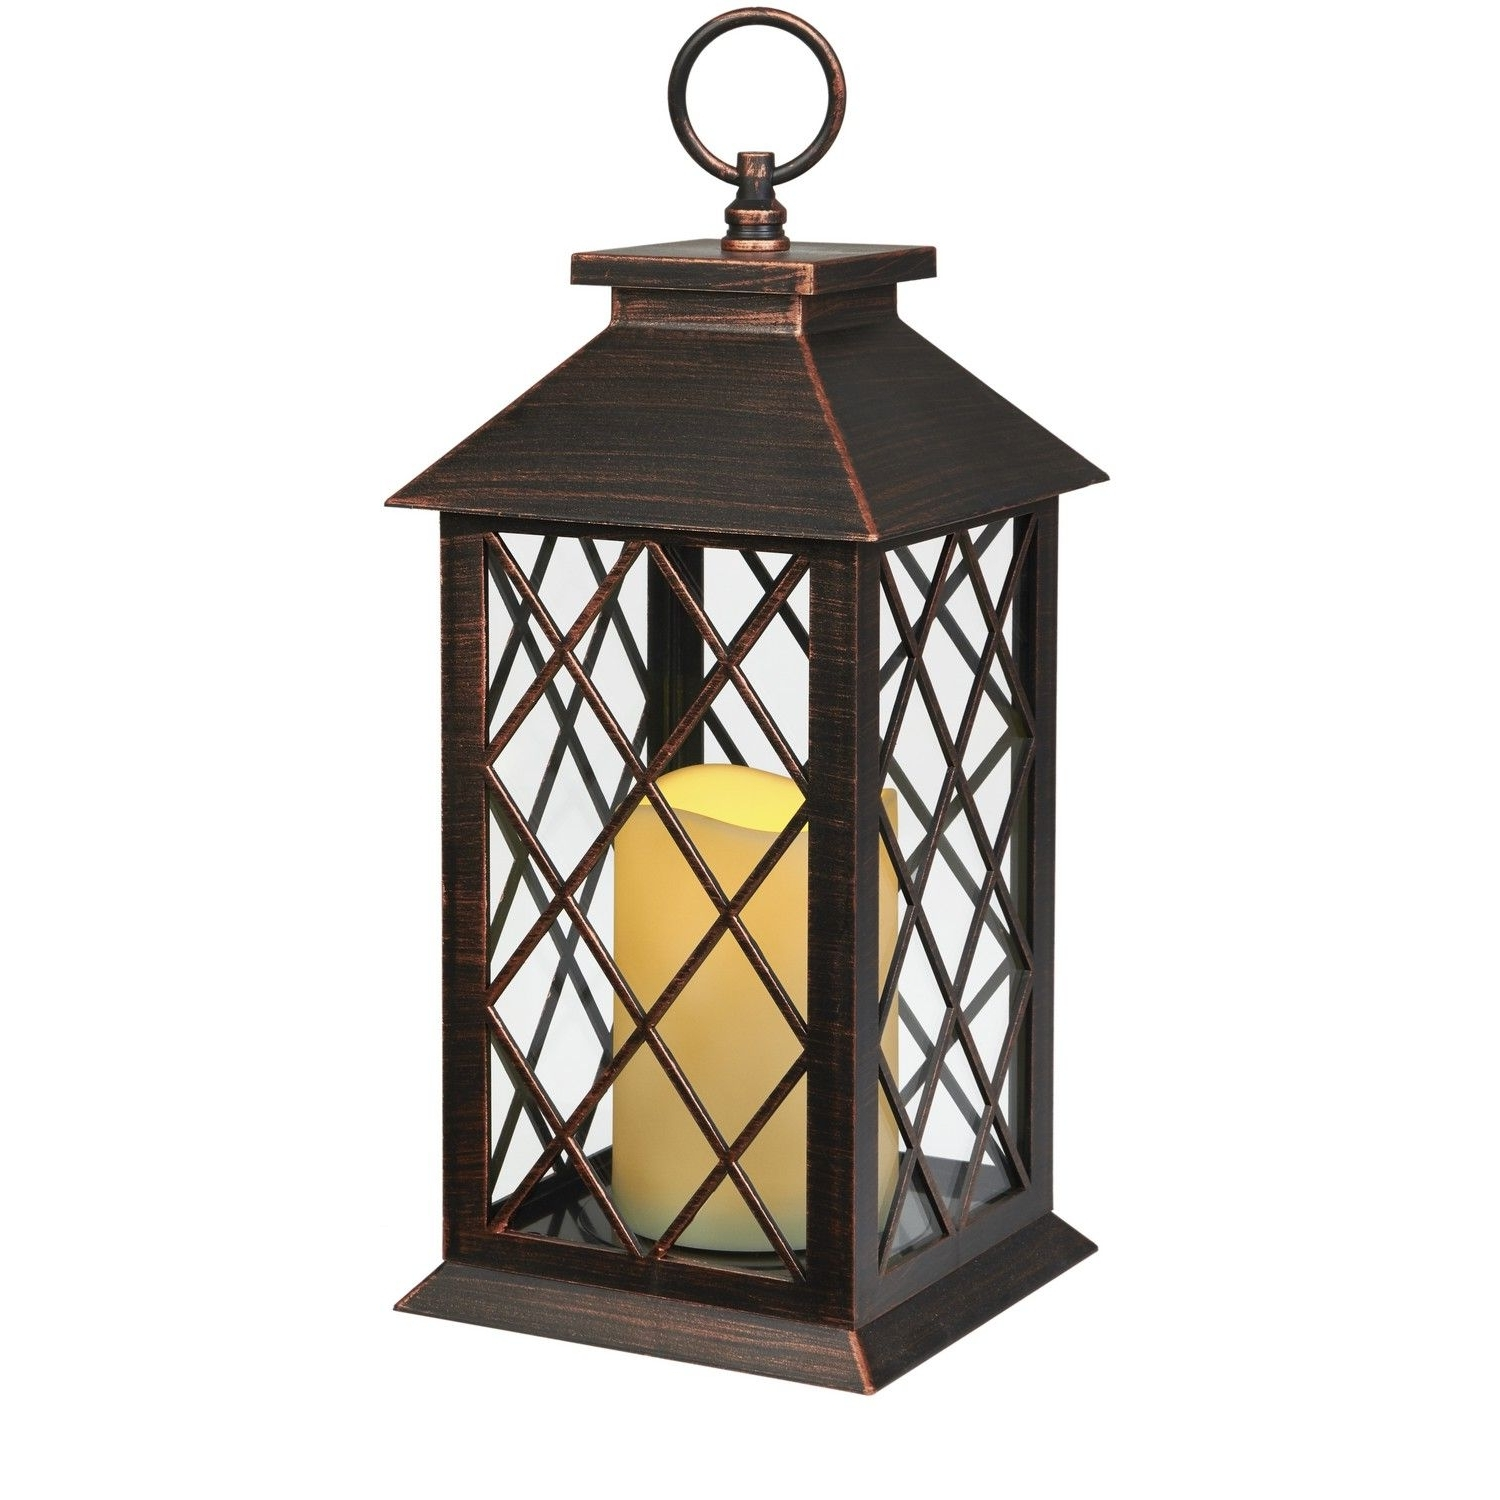 Outdoor Plastic Lanterns Regarding Well Known Bronze Plastic Candle Lanterns With Led Candle Installed: Size:14Cm (Gallery 5 of 20)